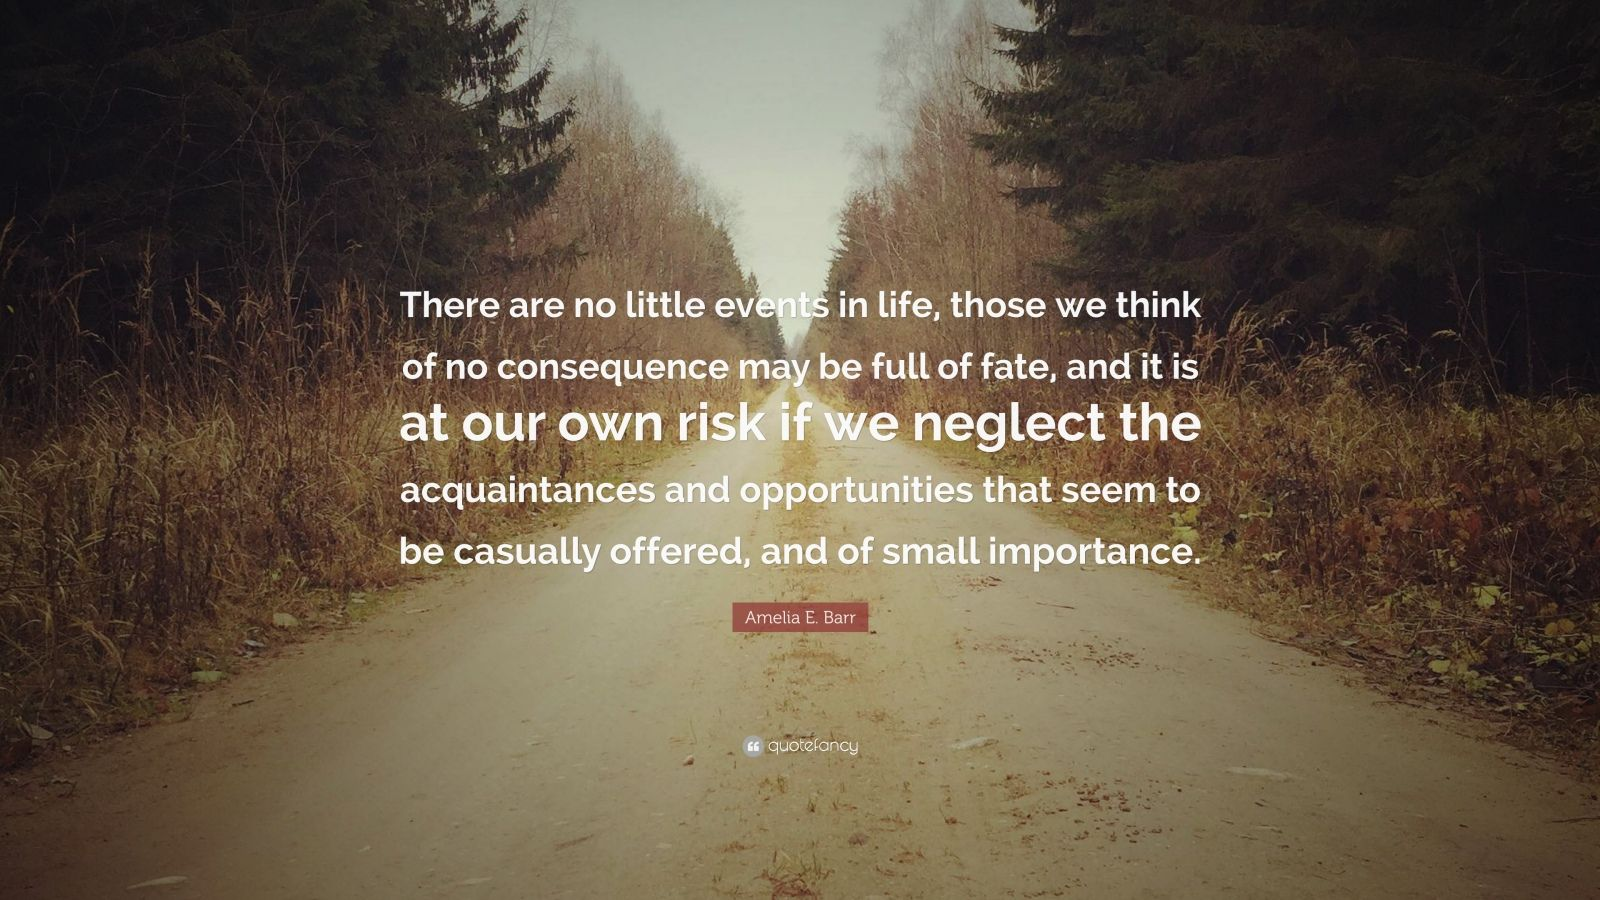 """Amelia E. Barr Quote: """"There are no little events in life, those we think of no consequence may be full of fate, and it is at our own risk if we neglect the acquaintances and opportunities that seem to be casually offered, and of small importance."""""""